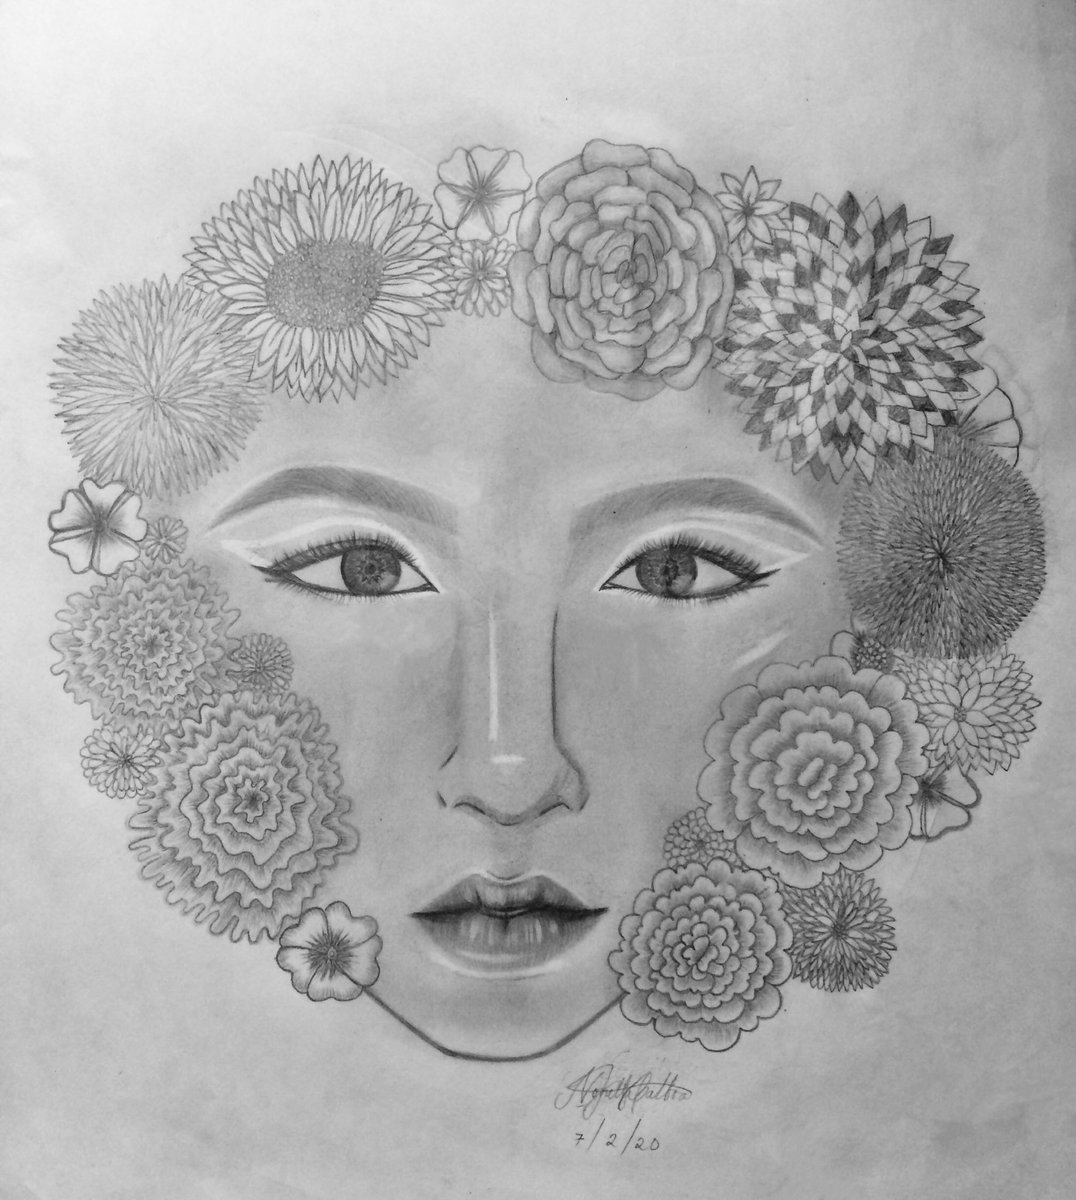 So uhm I did this 'cause I was bored and I'm not sure if you'll like this #art #fineart #illustartion #pencildrawing #artwork #draw #drawing #sketch #drawingsketch #flowers #faceart #sketchbook #drawingoftheday #drawinyourstylepic.twitter.com/pFOxzn4CNX